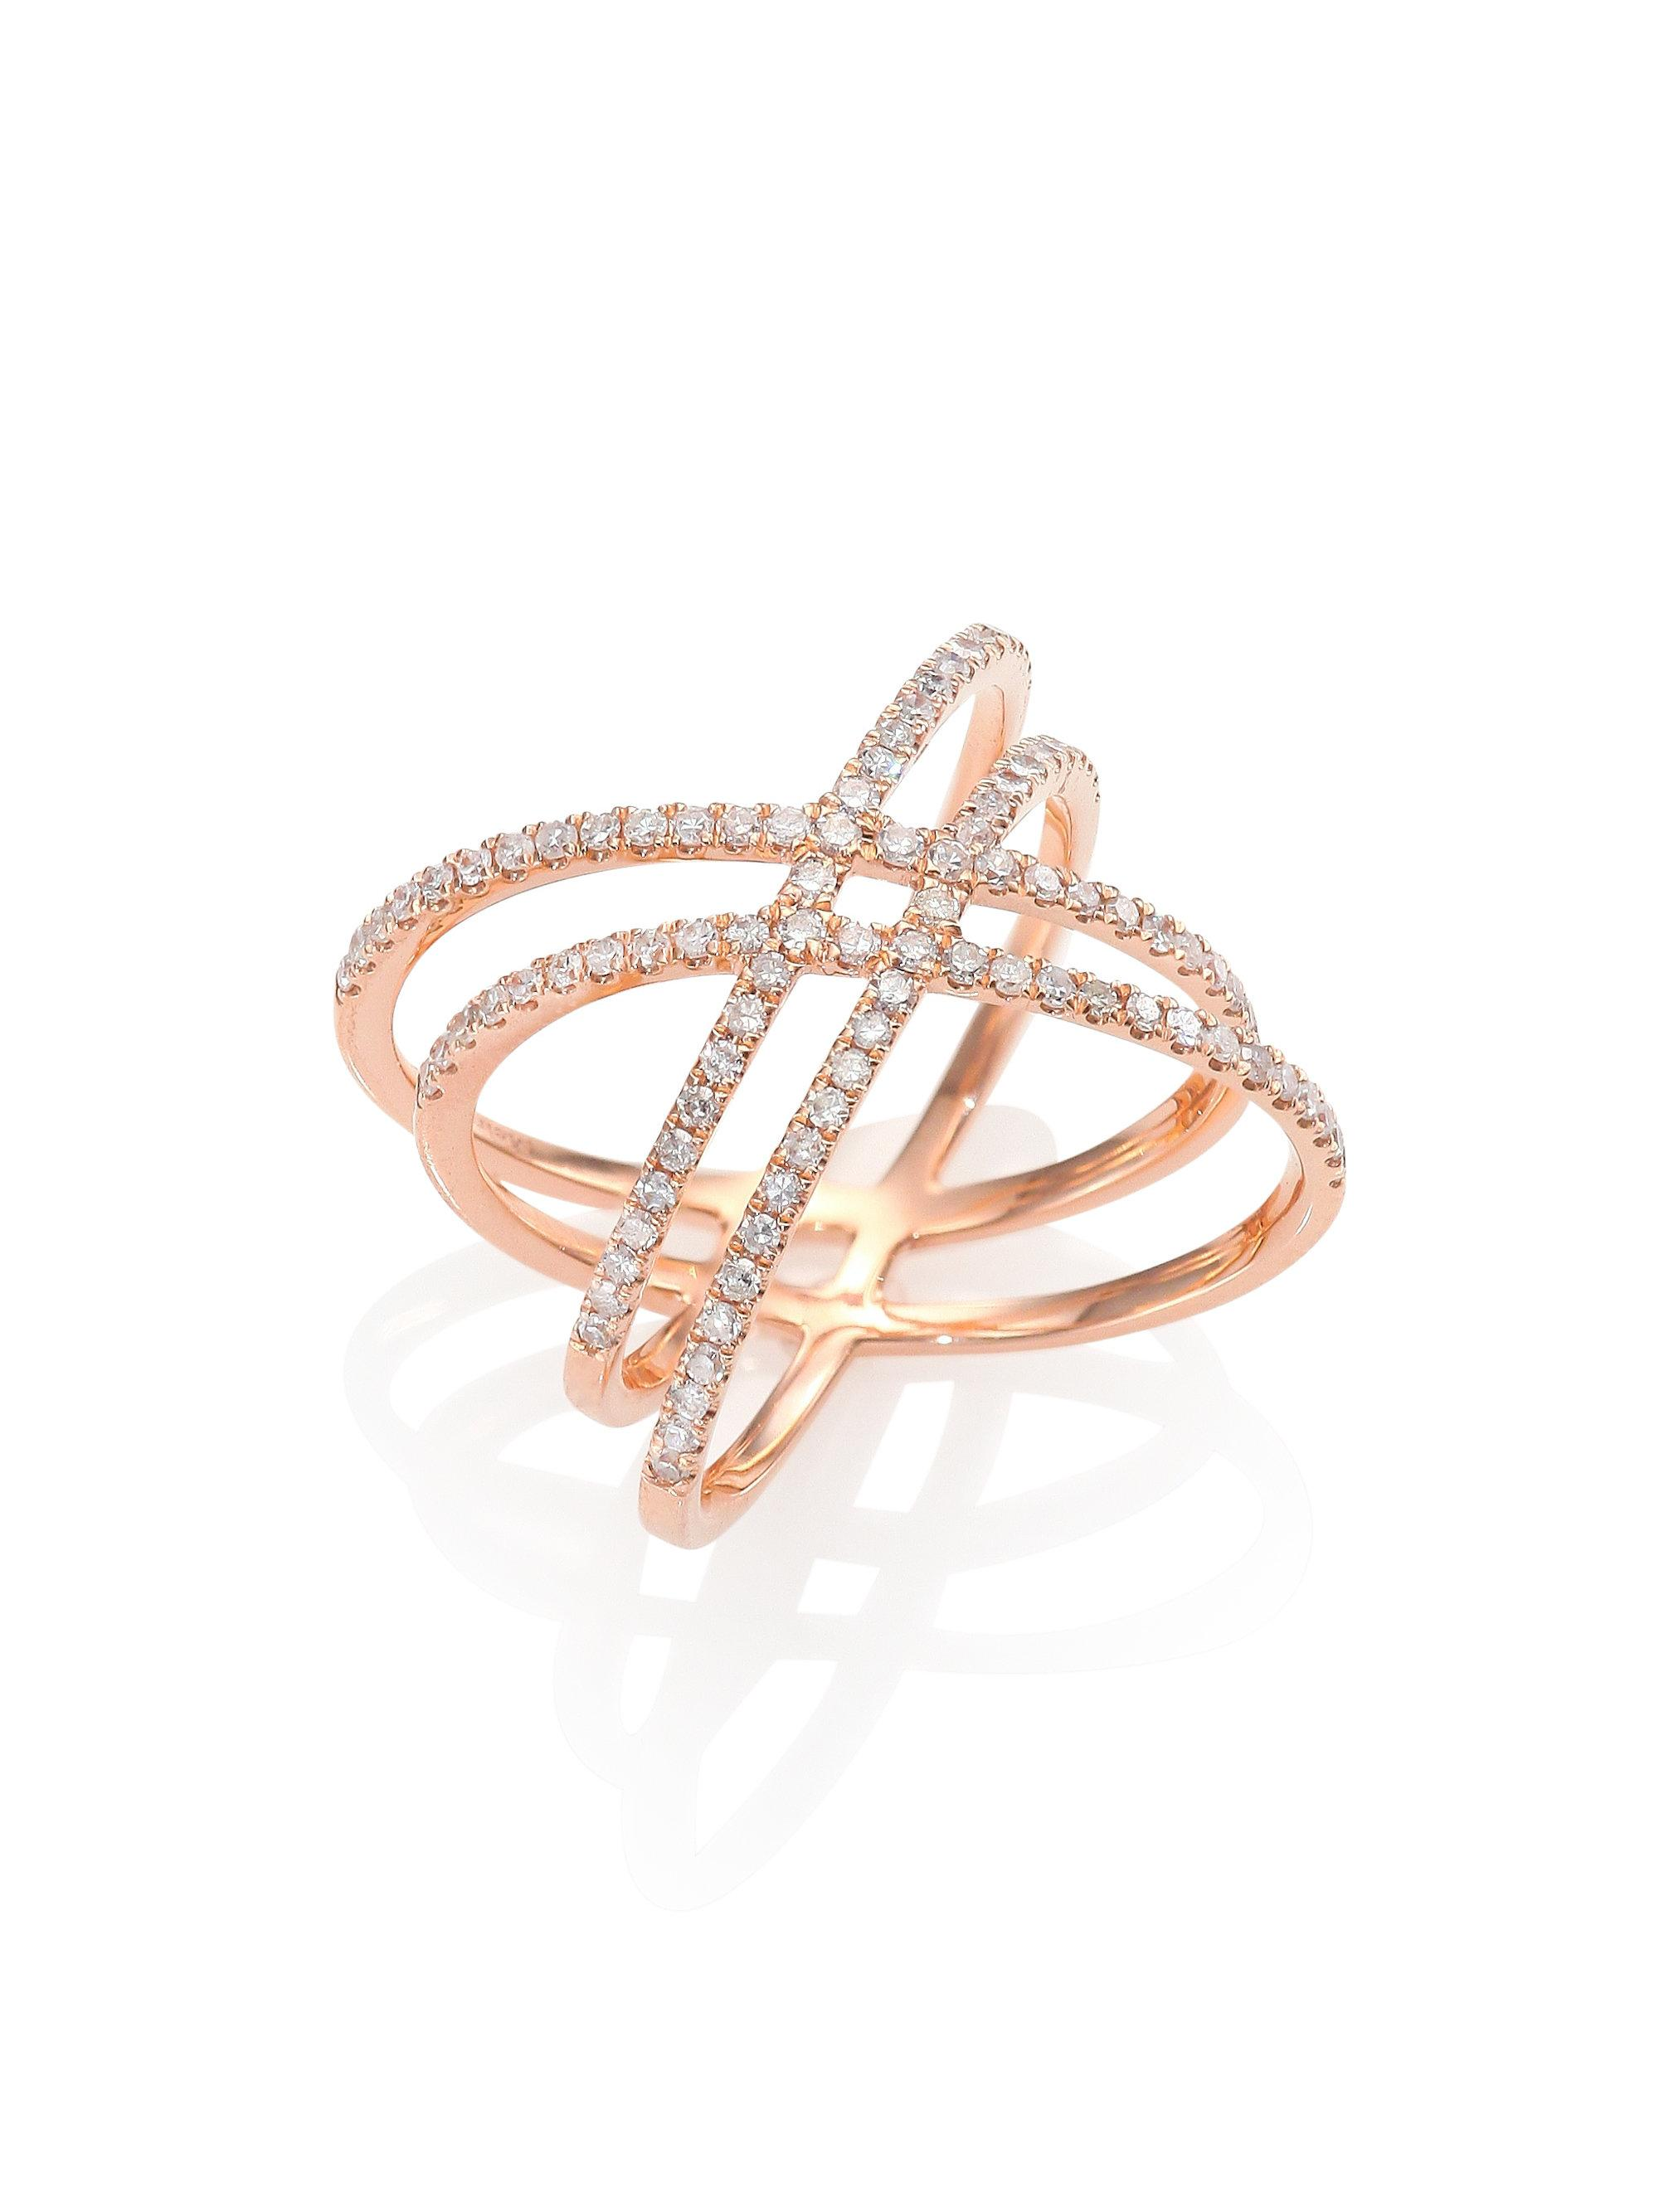 T W Chagne And White Diamond Crisscross Ring In 14kt Rose Gold